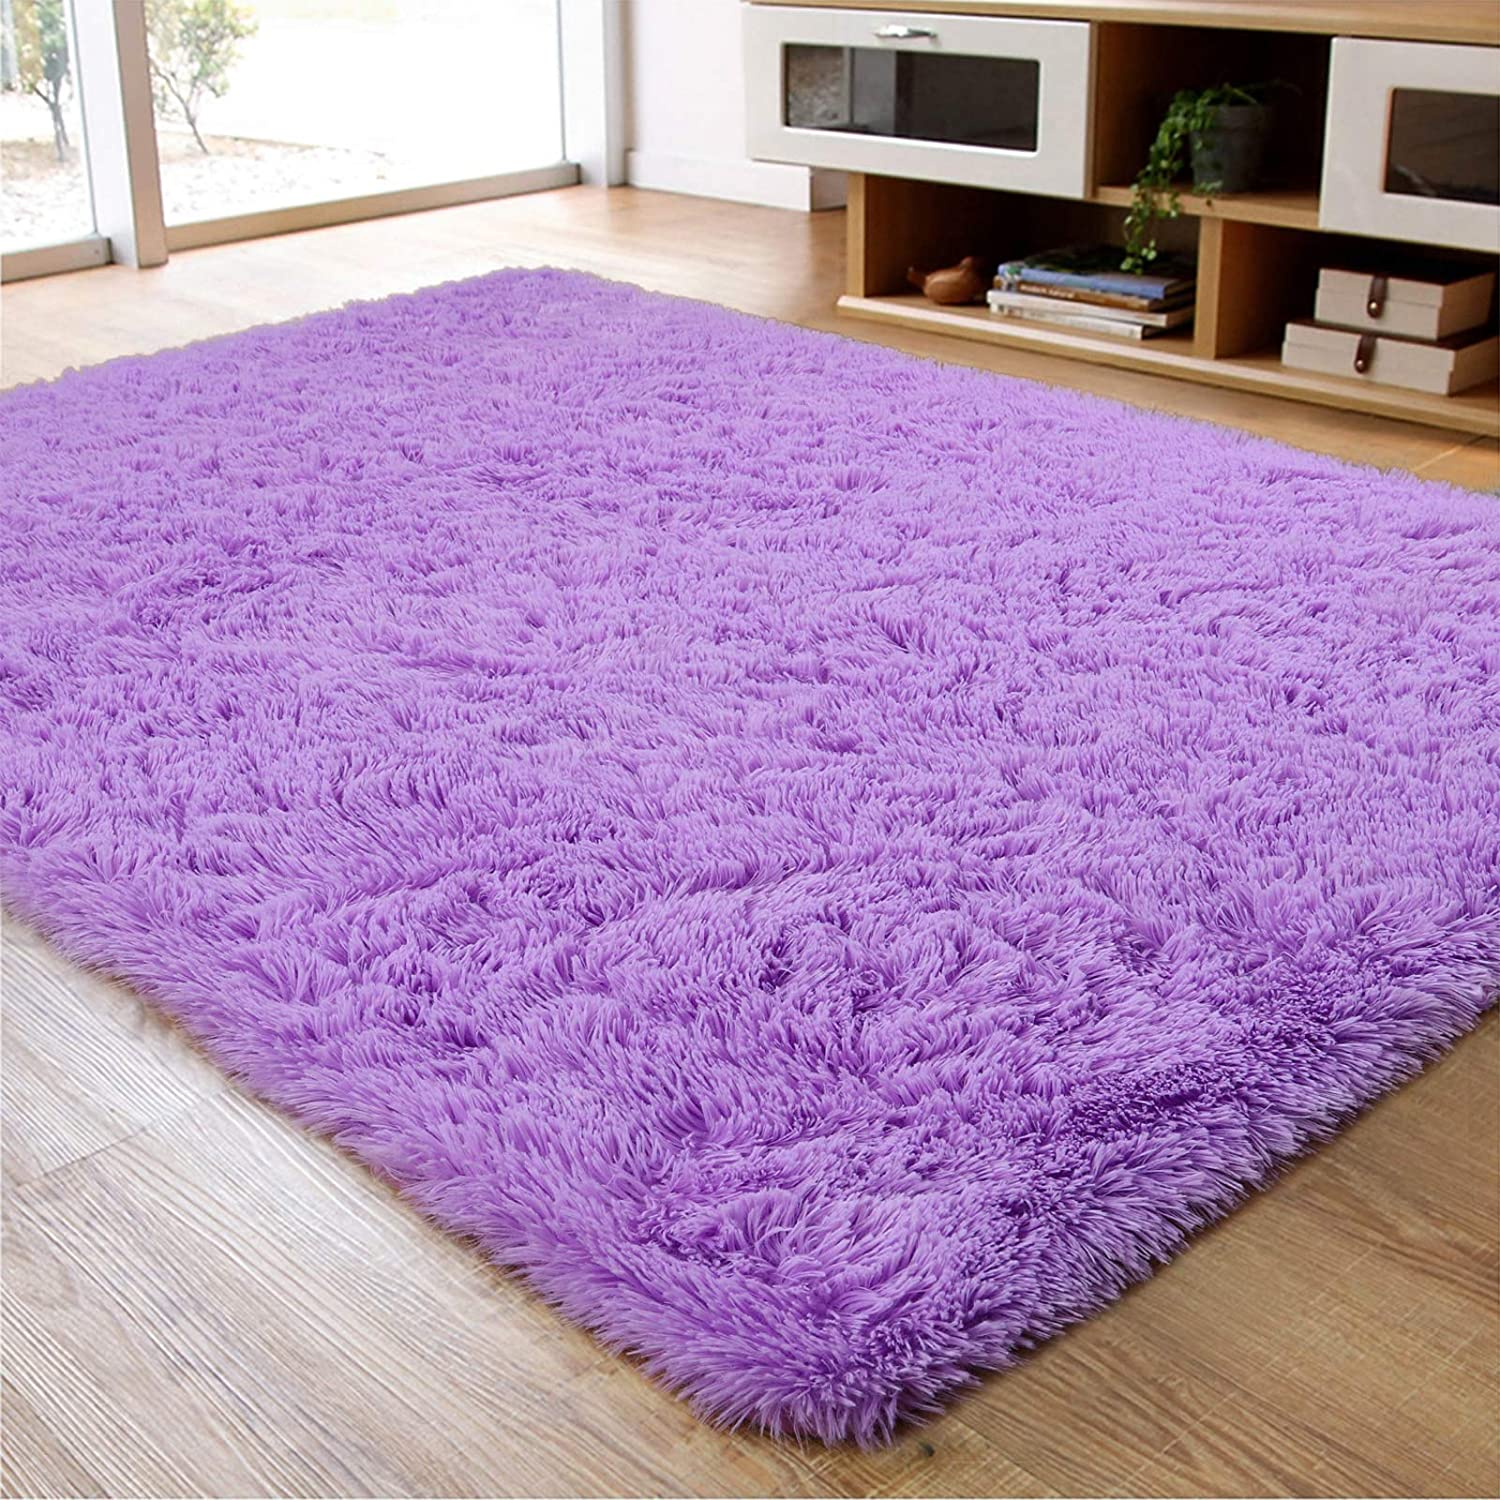 Soft Fluffy Area Rug for Living Room Bedroom, 5x8 Purple Plush Shag Rugs with Non-Slip Backing, Fuzzy Shaggy Accent Carpets for Kids Girls Rooms, Modern Apartment Nursery Dorm Indoor Furry Decor